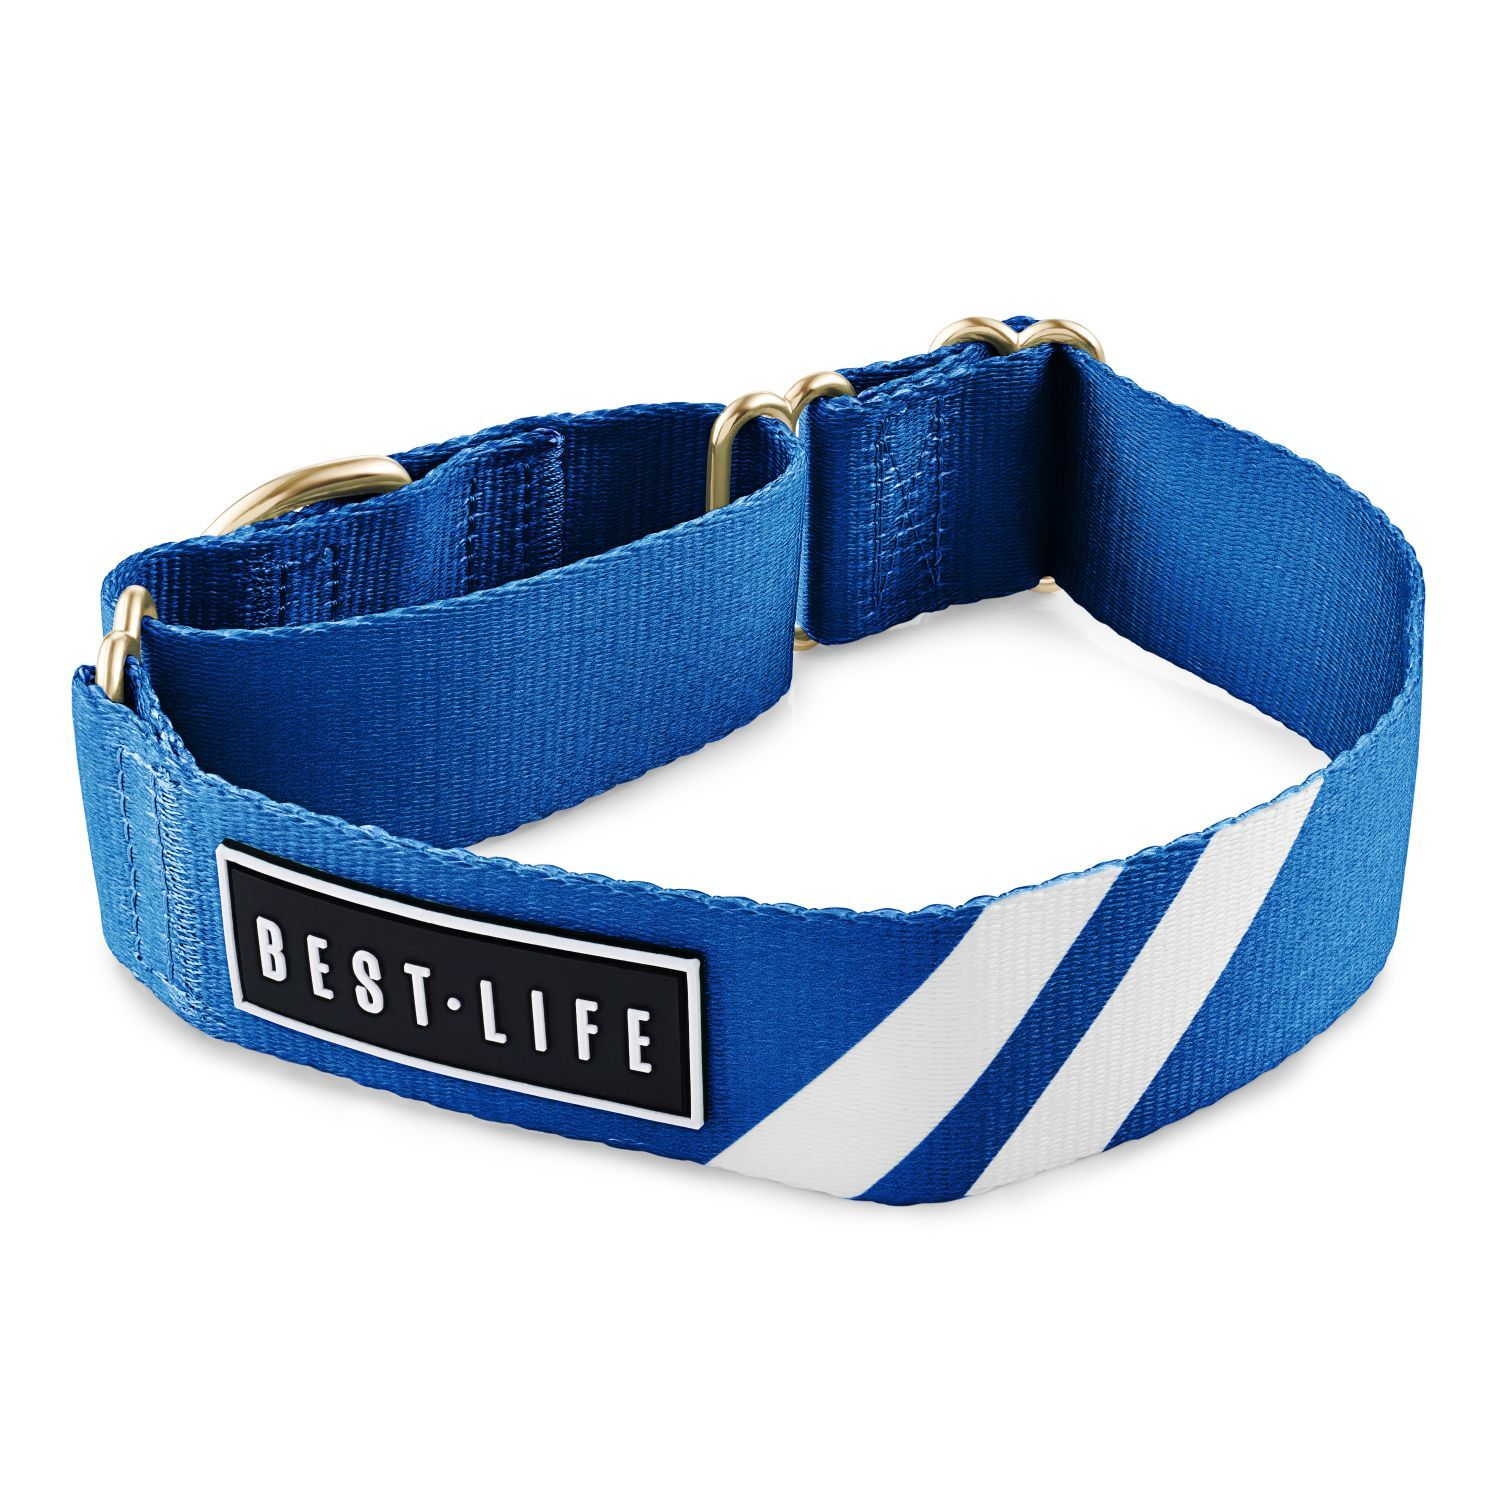 Loyal Blue - Martingale Collar collar bestlifeleashes Small 11